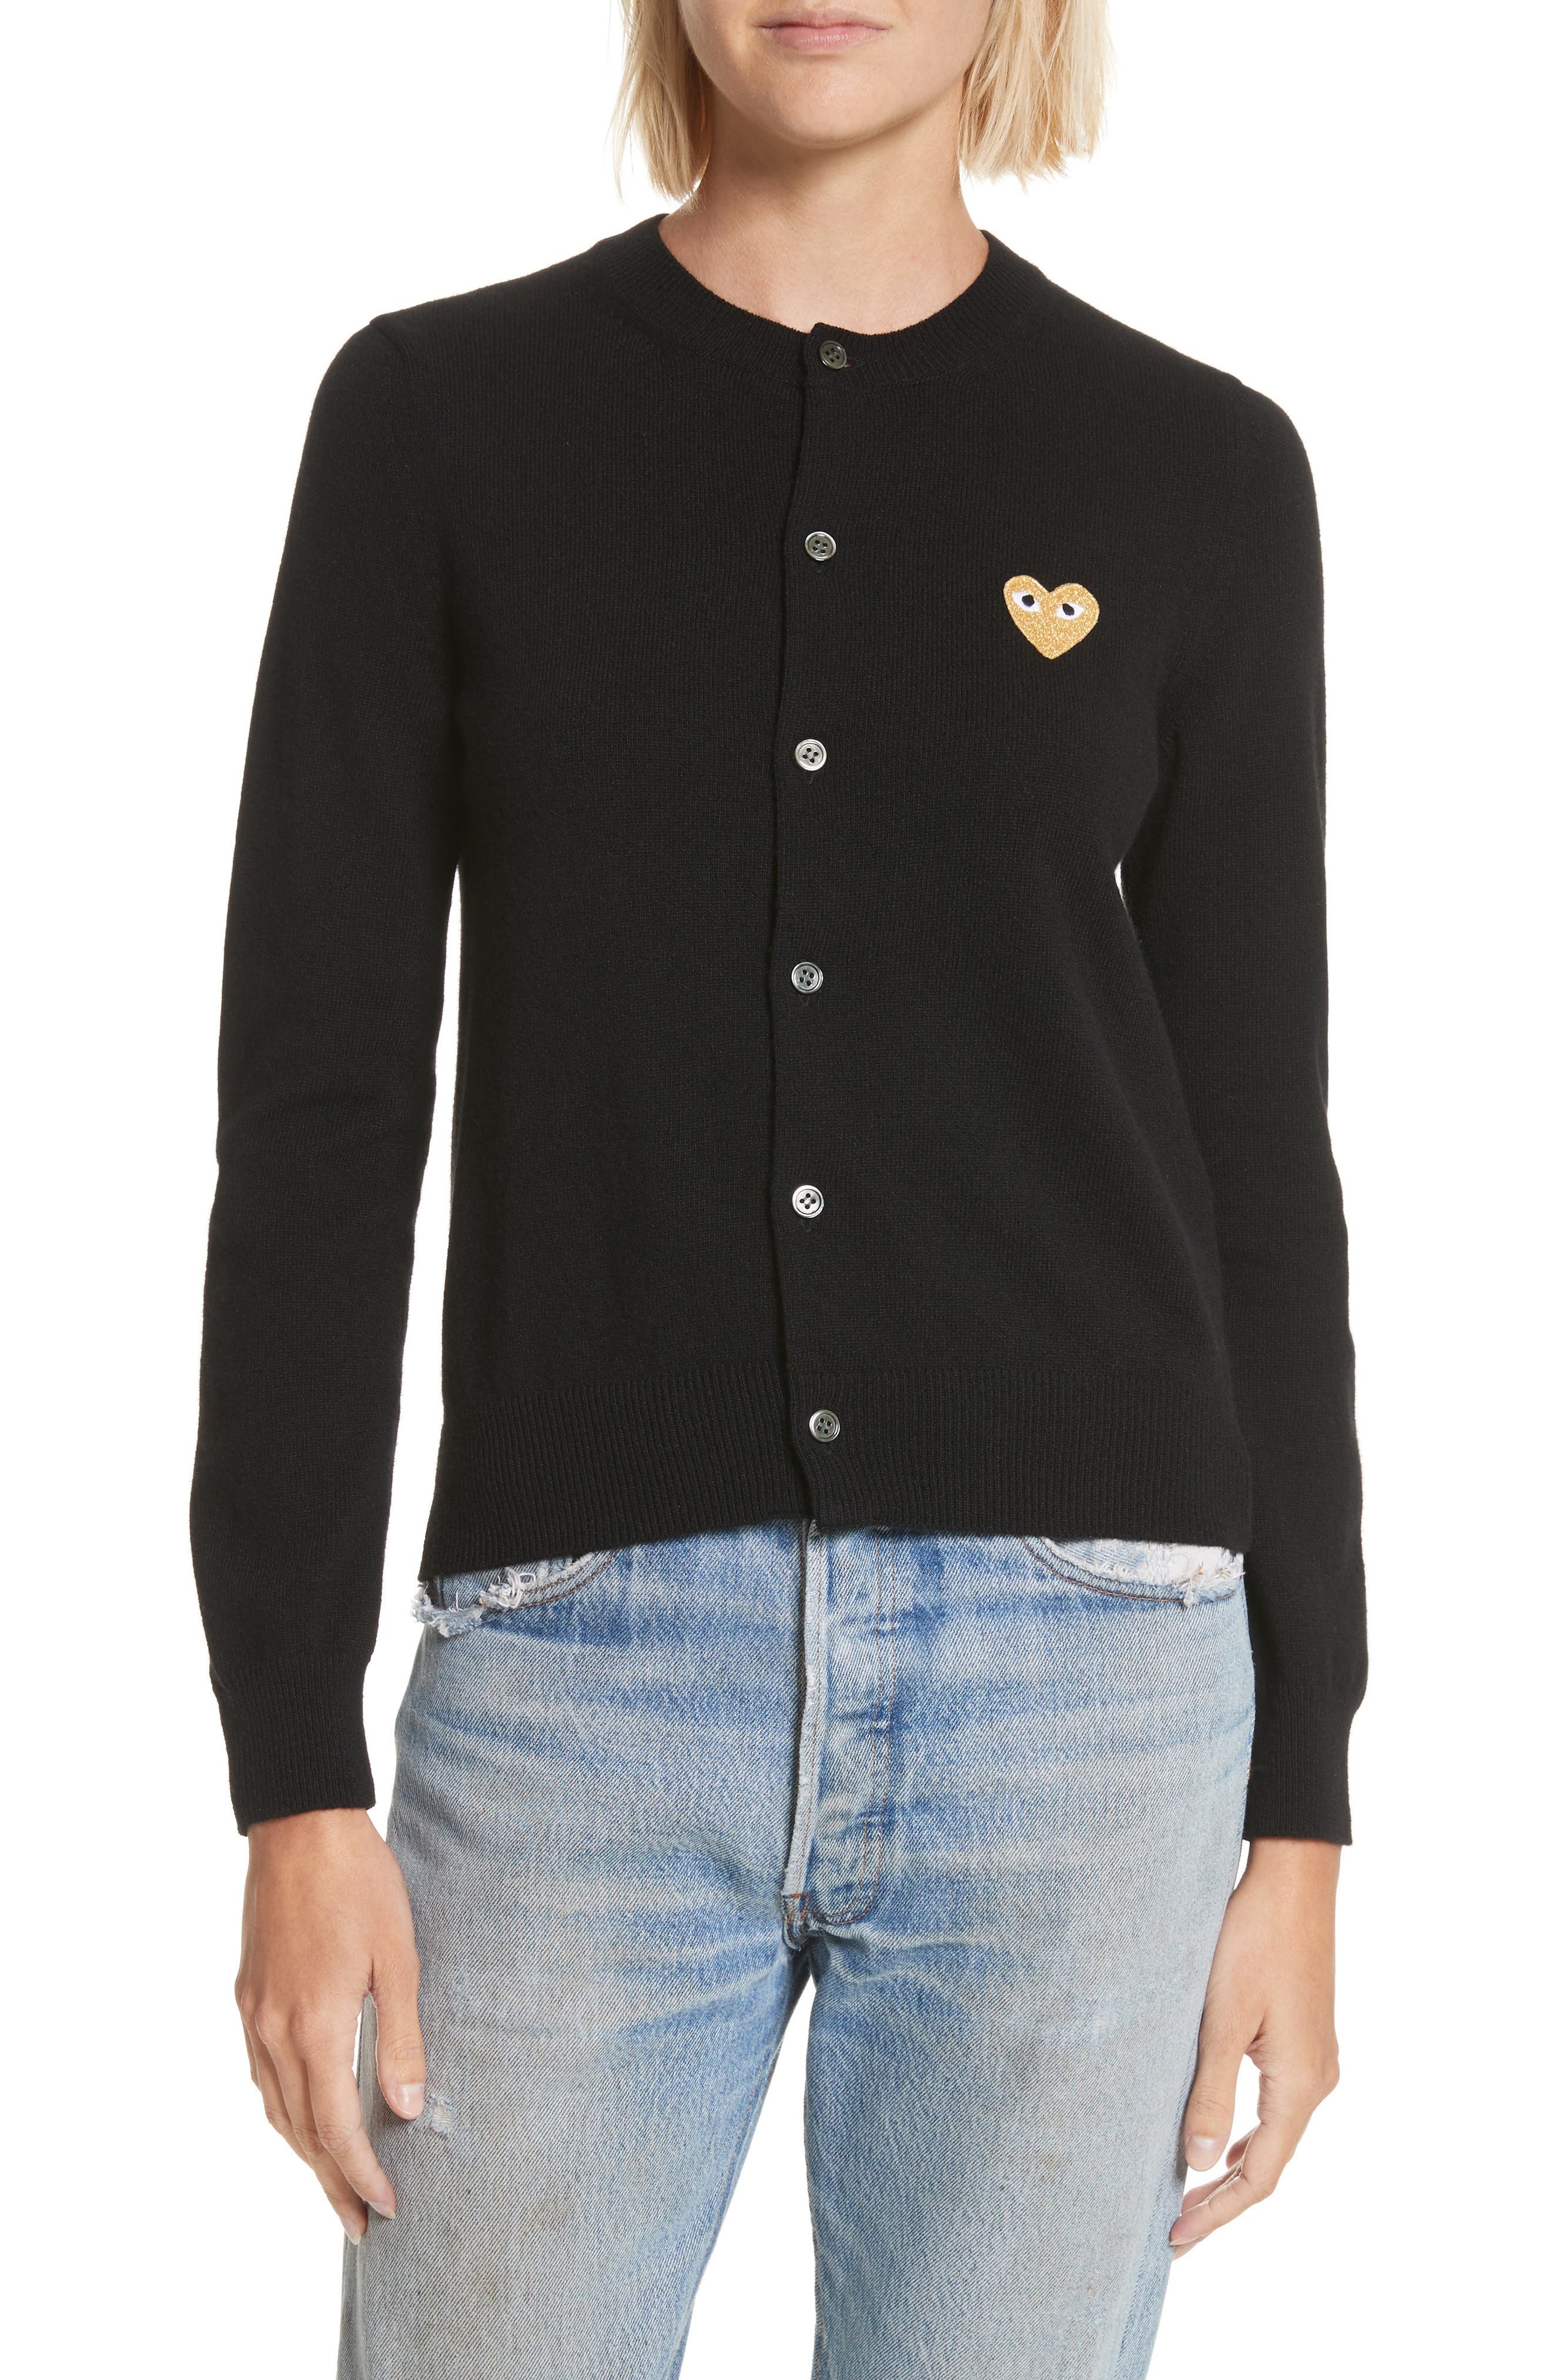 PLAY Gold Heart Patch Wool Cardigan,                         Main,                         color, Black